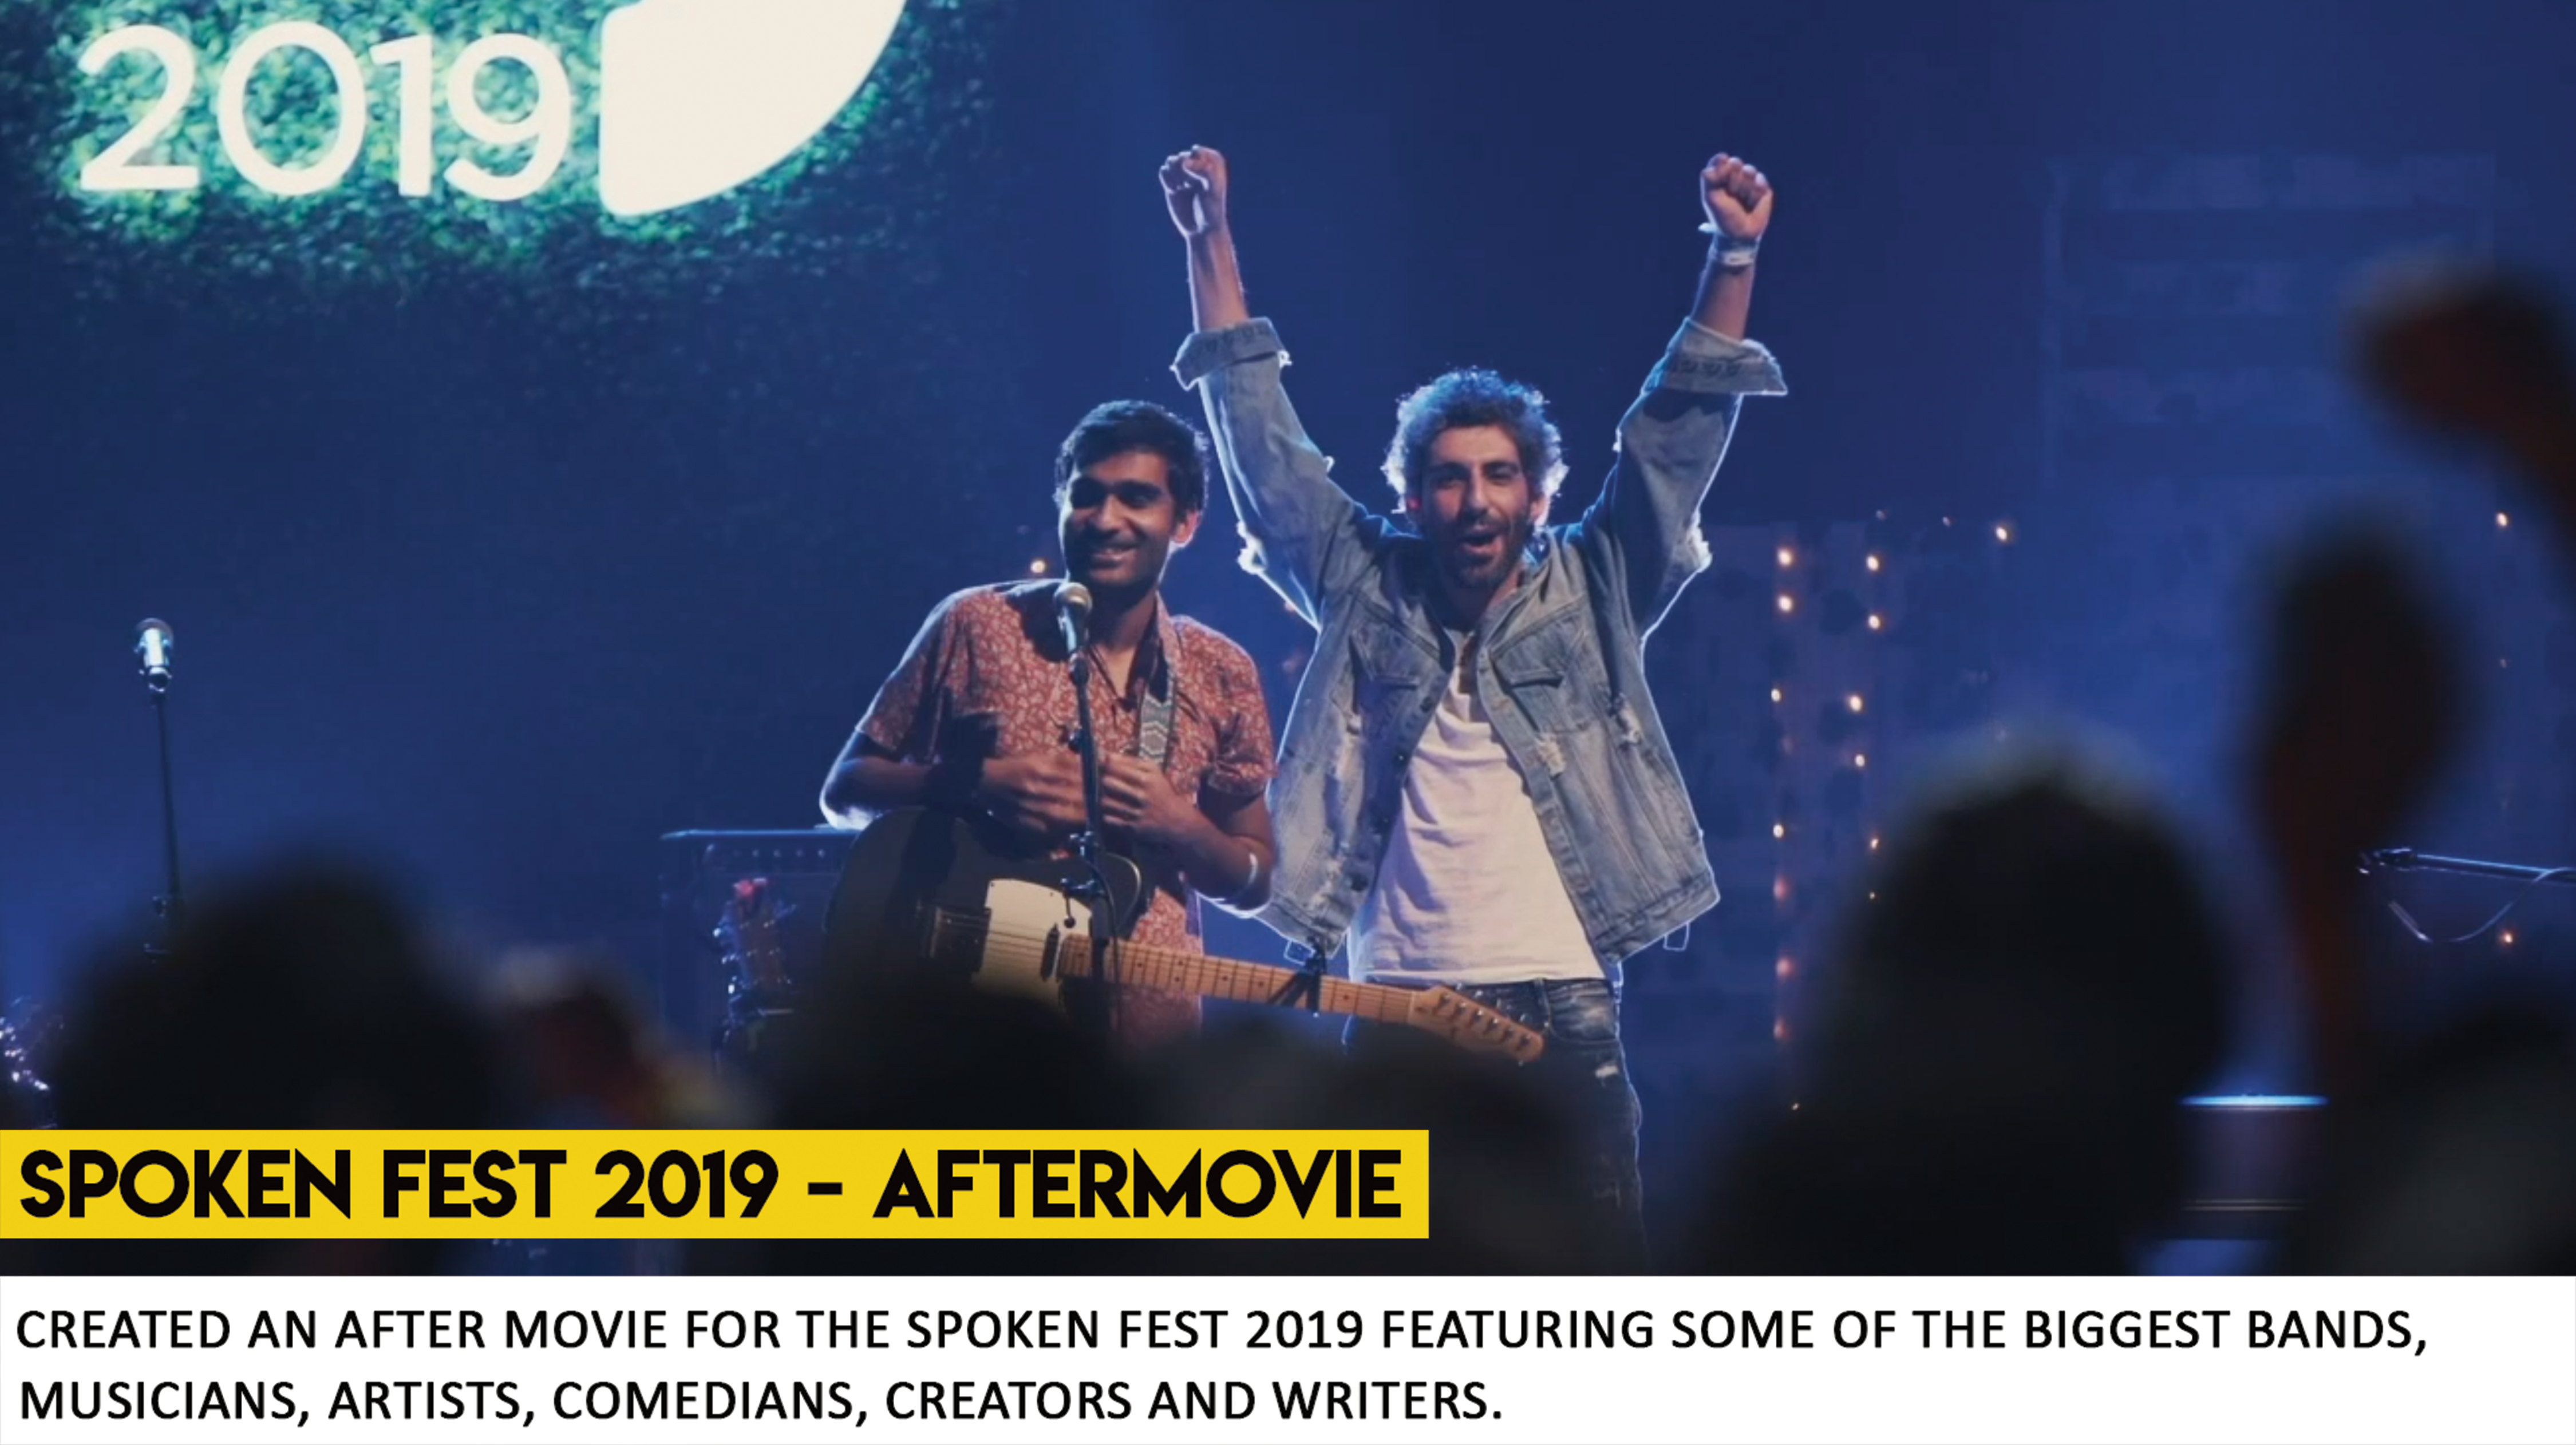 Spoken Fest 2019 - Aftermovie by What Wo